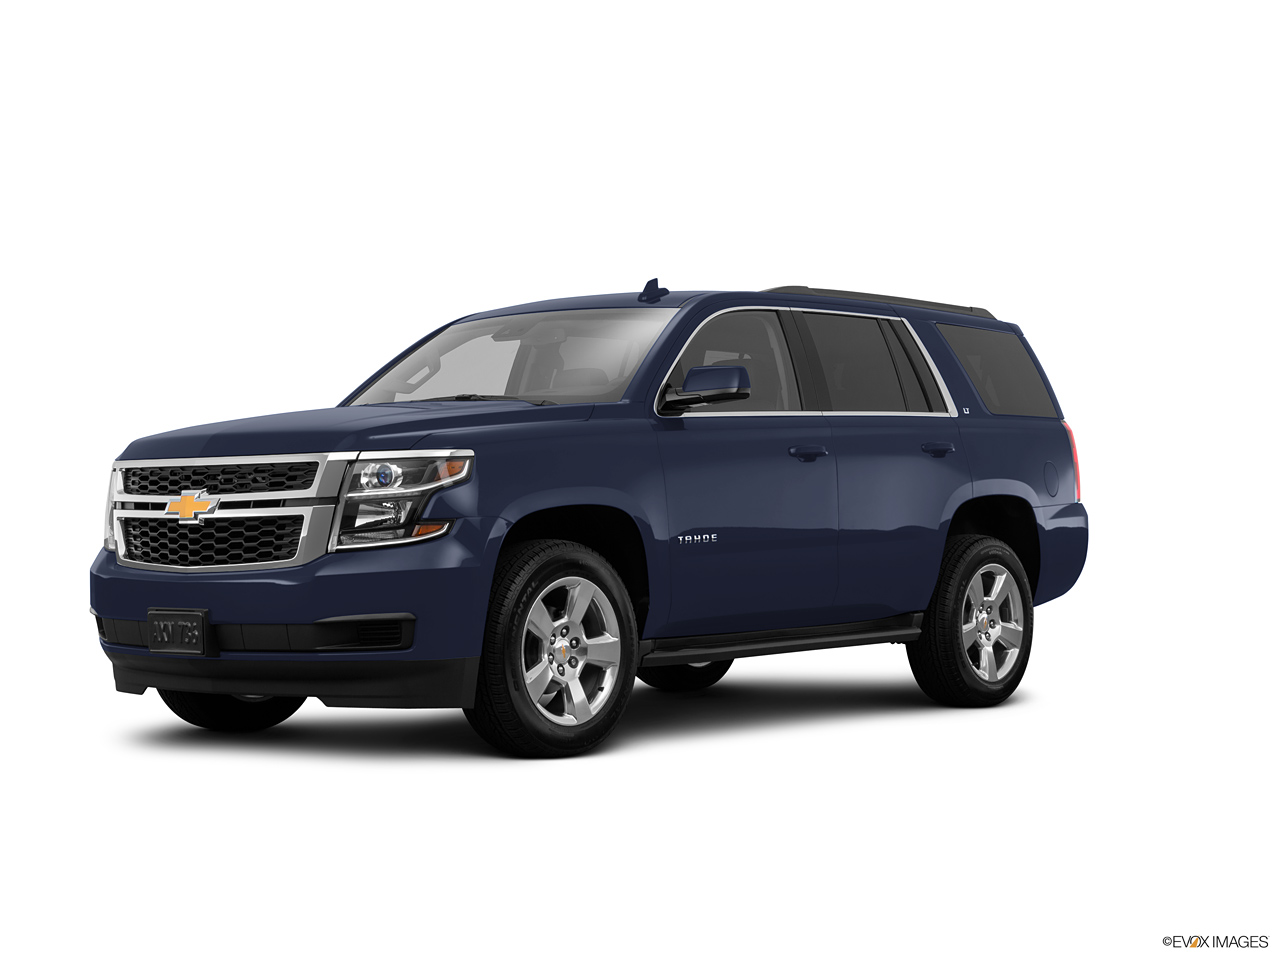 2018 Chevrolet Tahoe 4wd Review: Car Pictures List For Chevrolet Tahoe 2018 LT 4WD (Egypt